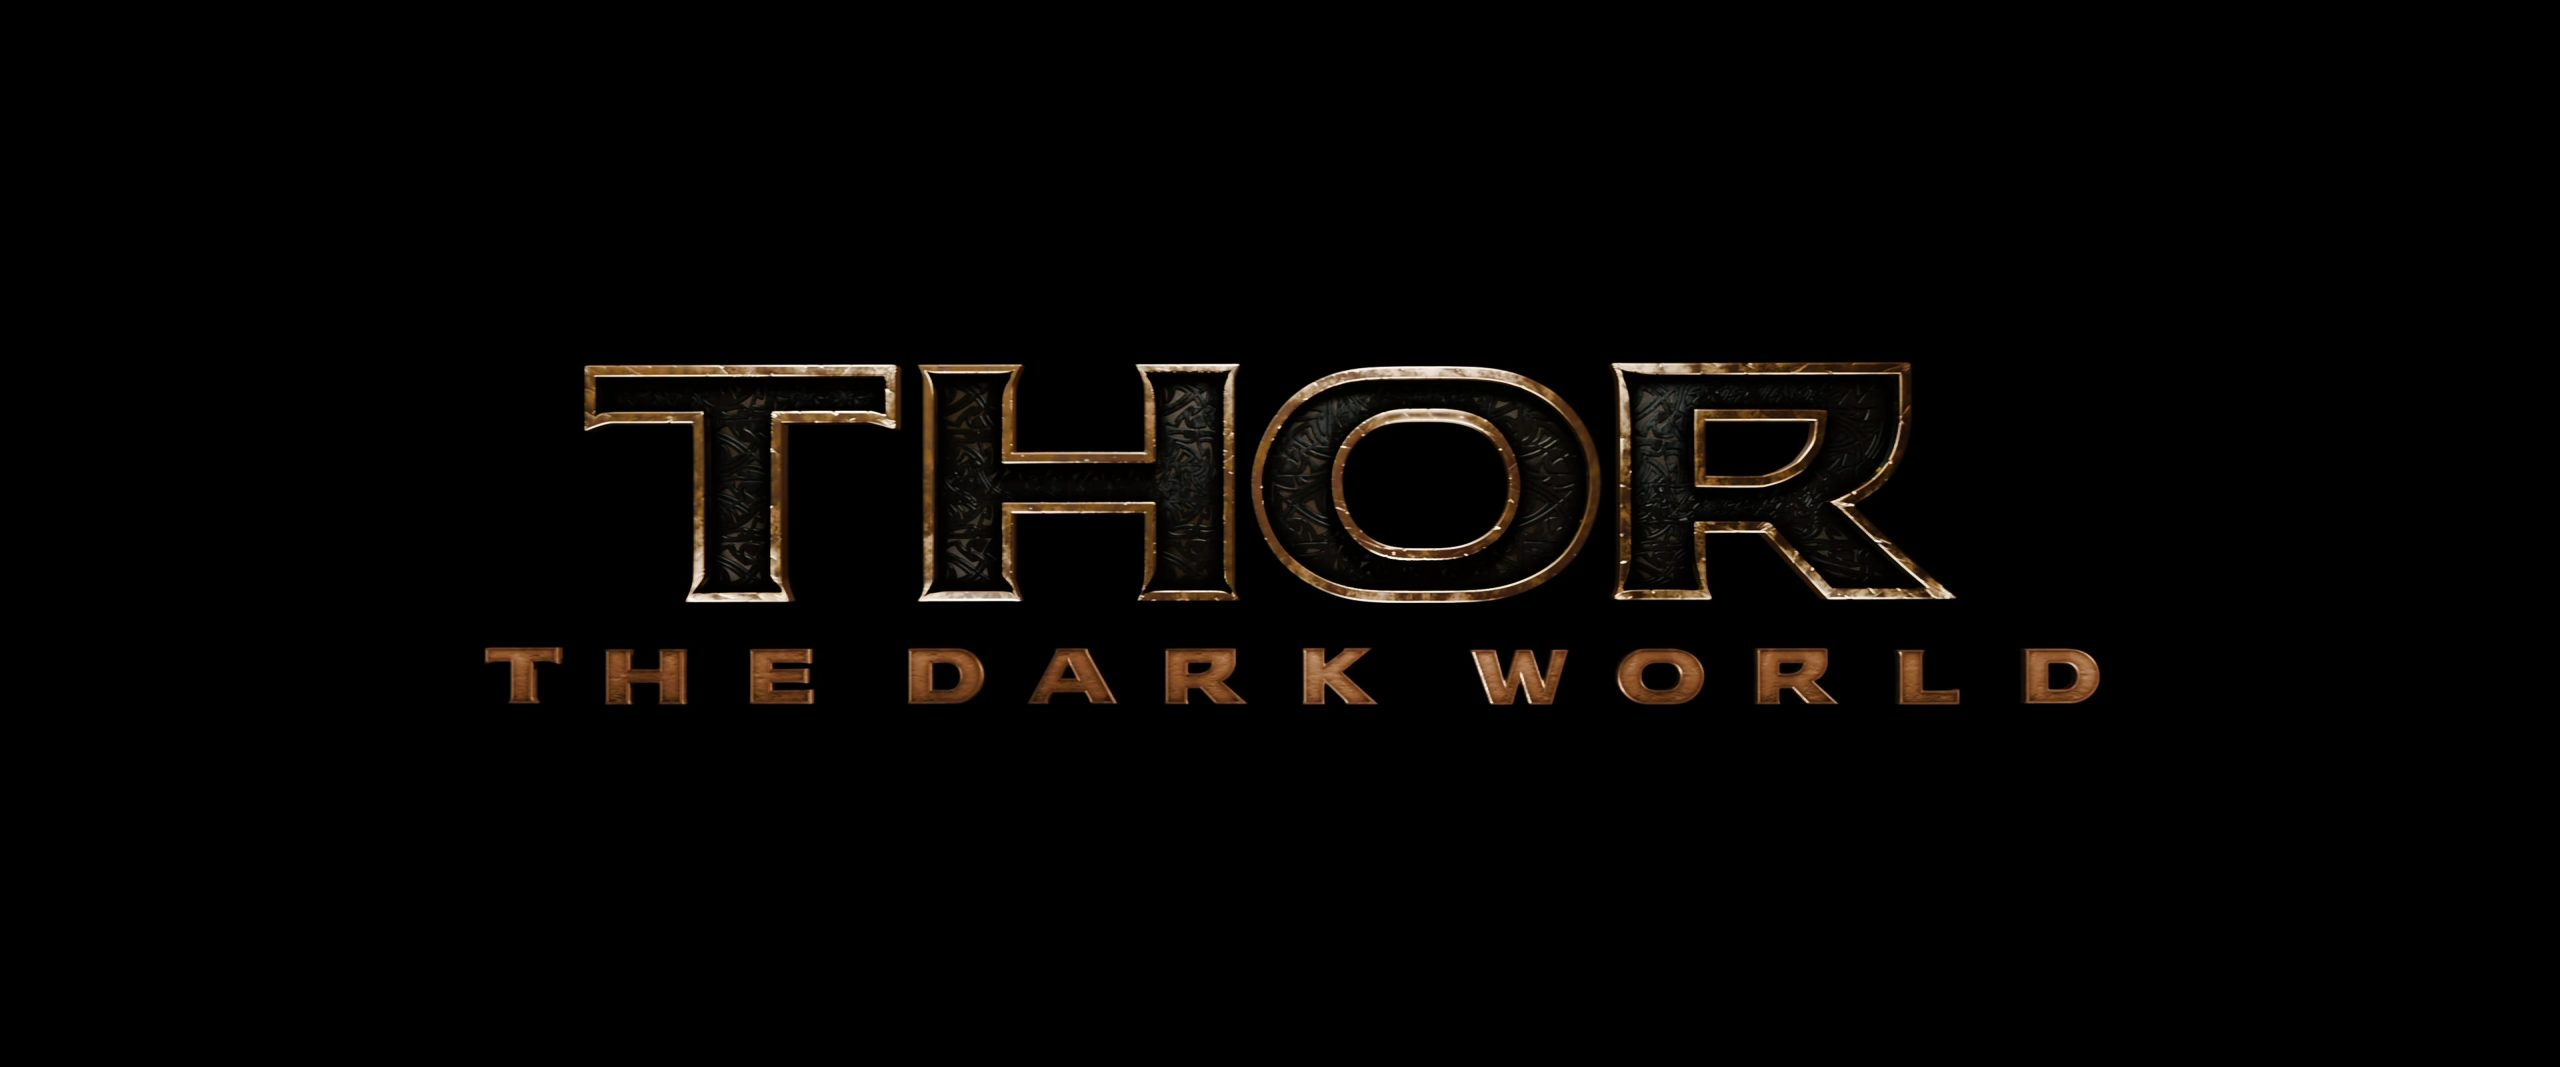 Thor: The Dark World (2013) [4K]